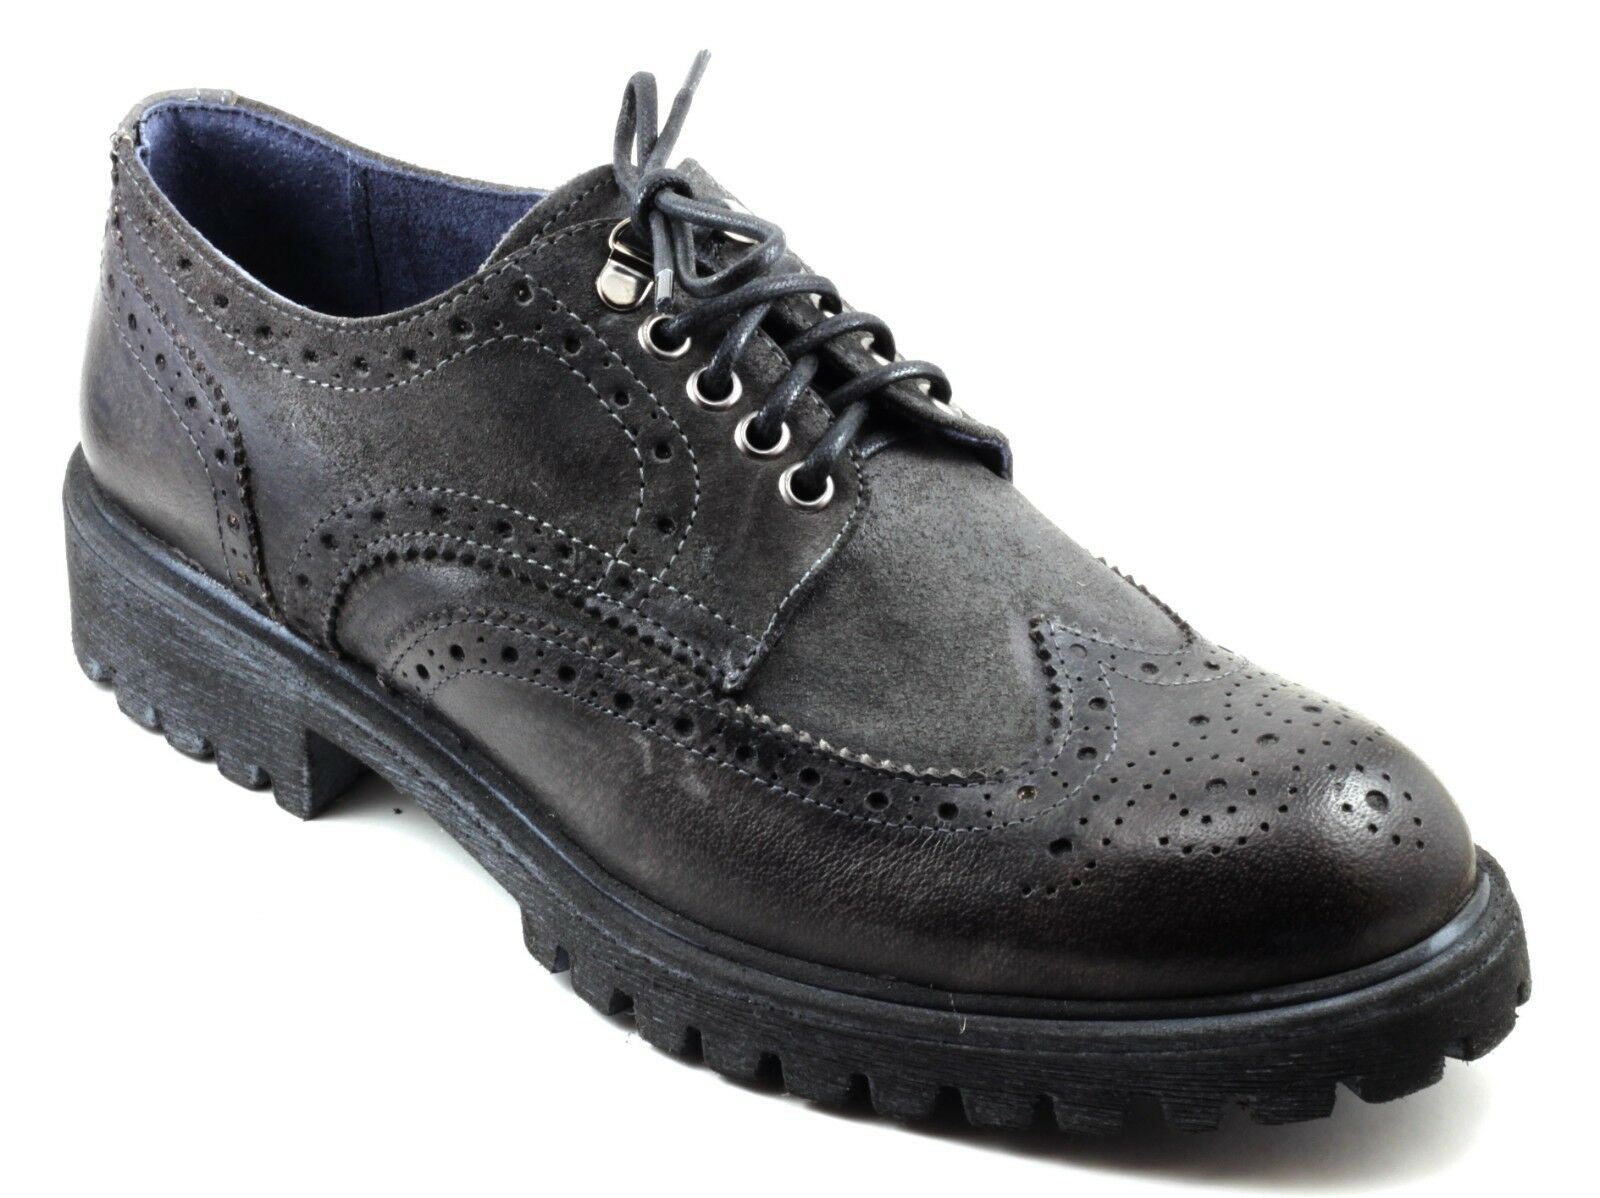 zapatos hombres CASUAL STILE INGLESE ALLACCIATE PELLE BUFALO negro n.44 Made in